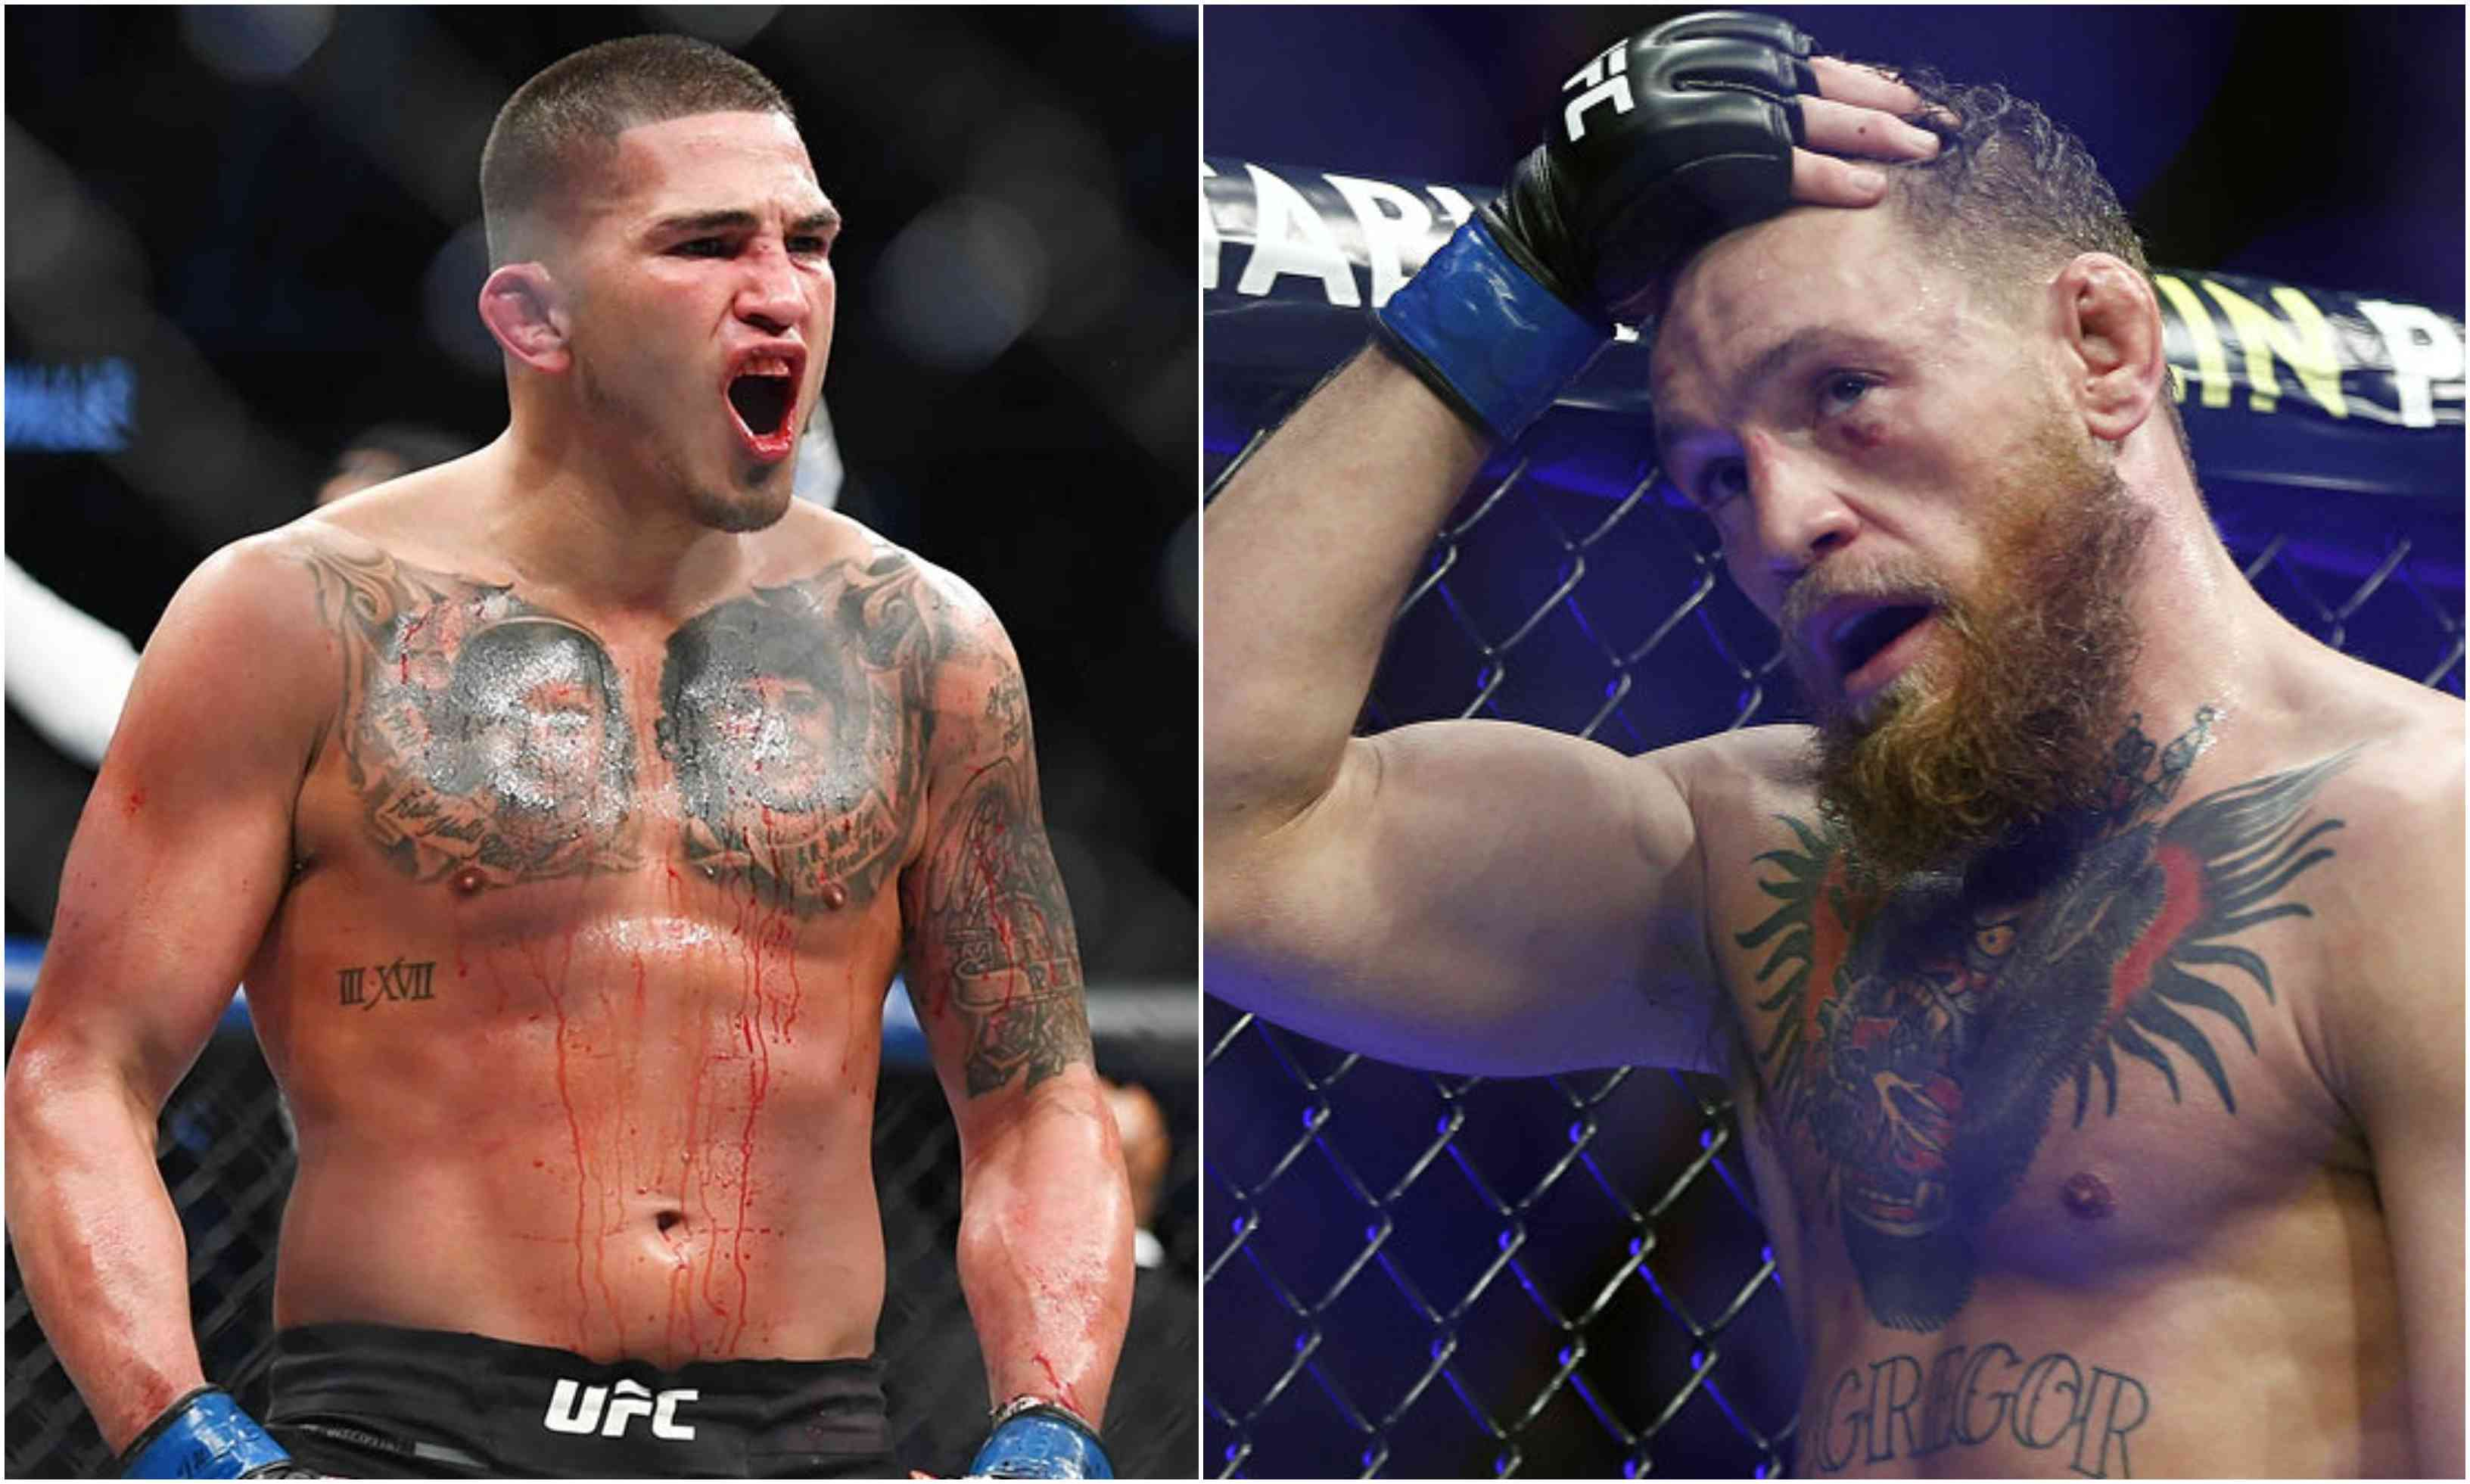 Anthony Pettis was in discussions to fight Conor McGregor at UFC 244 - Pettis